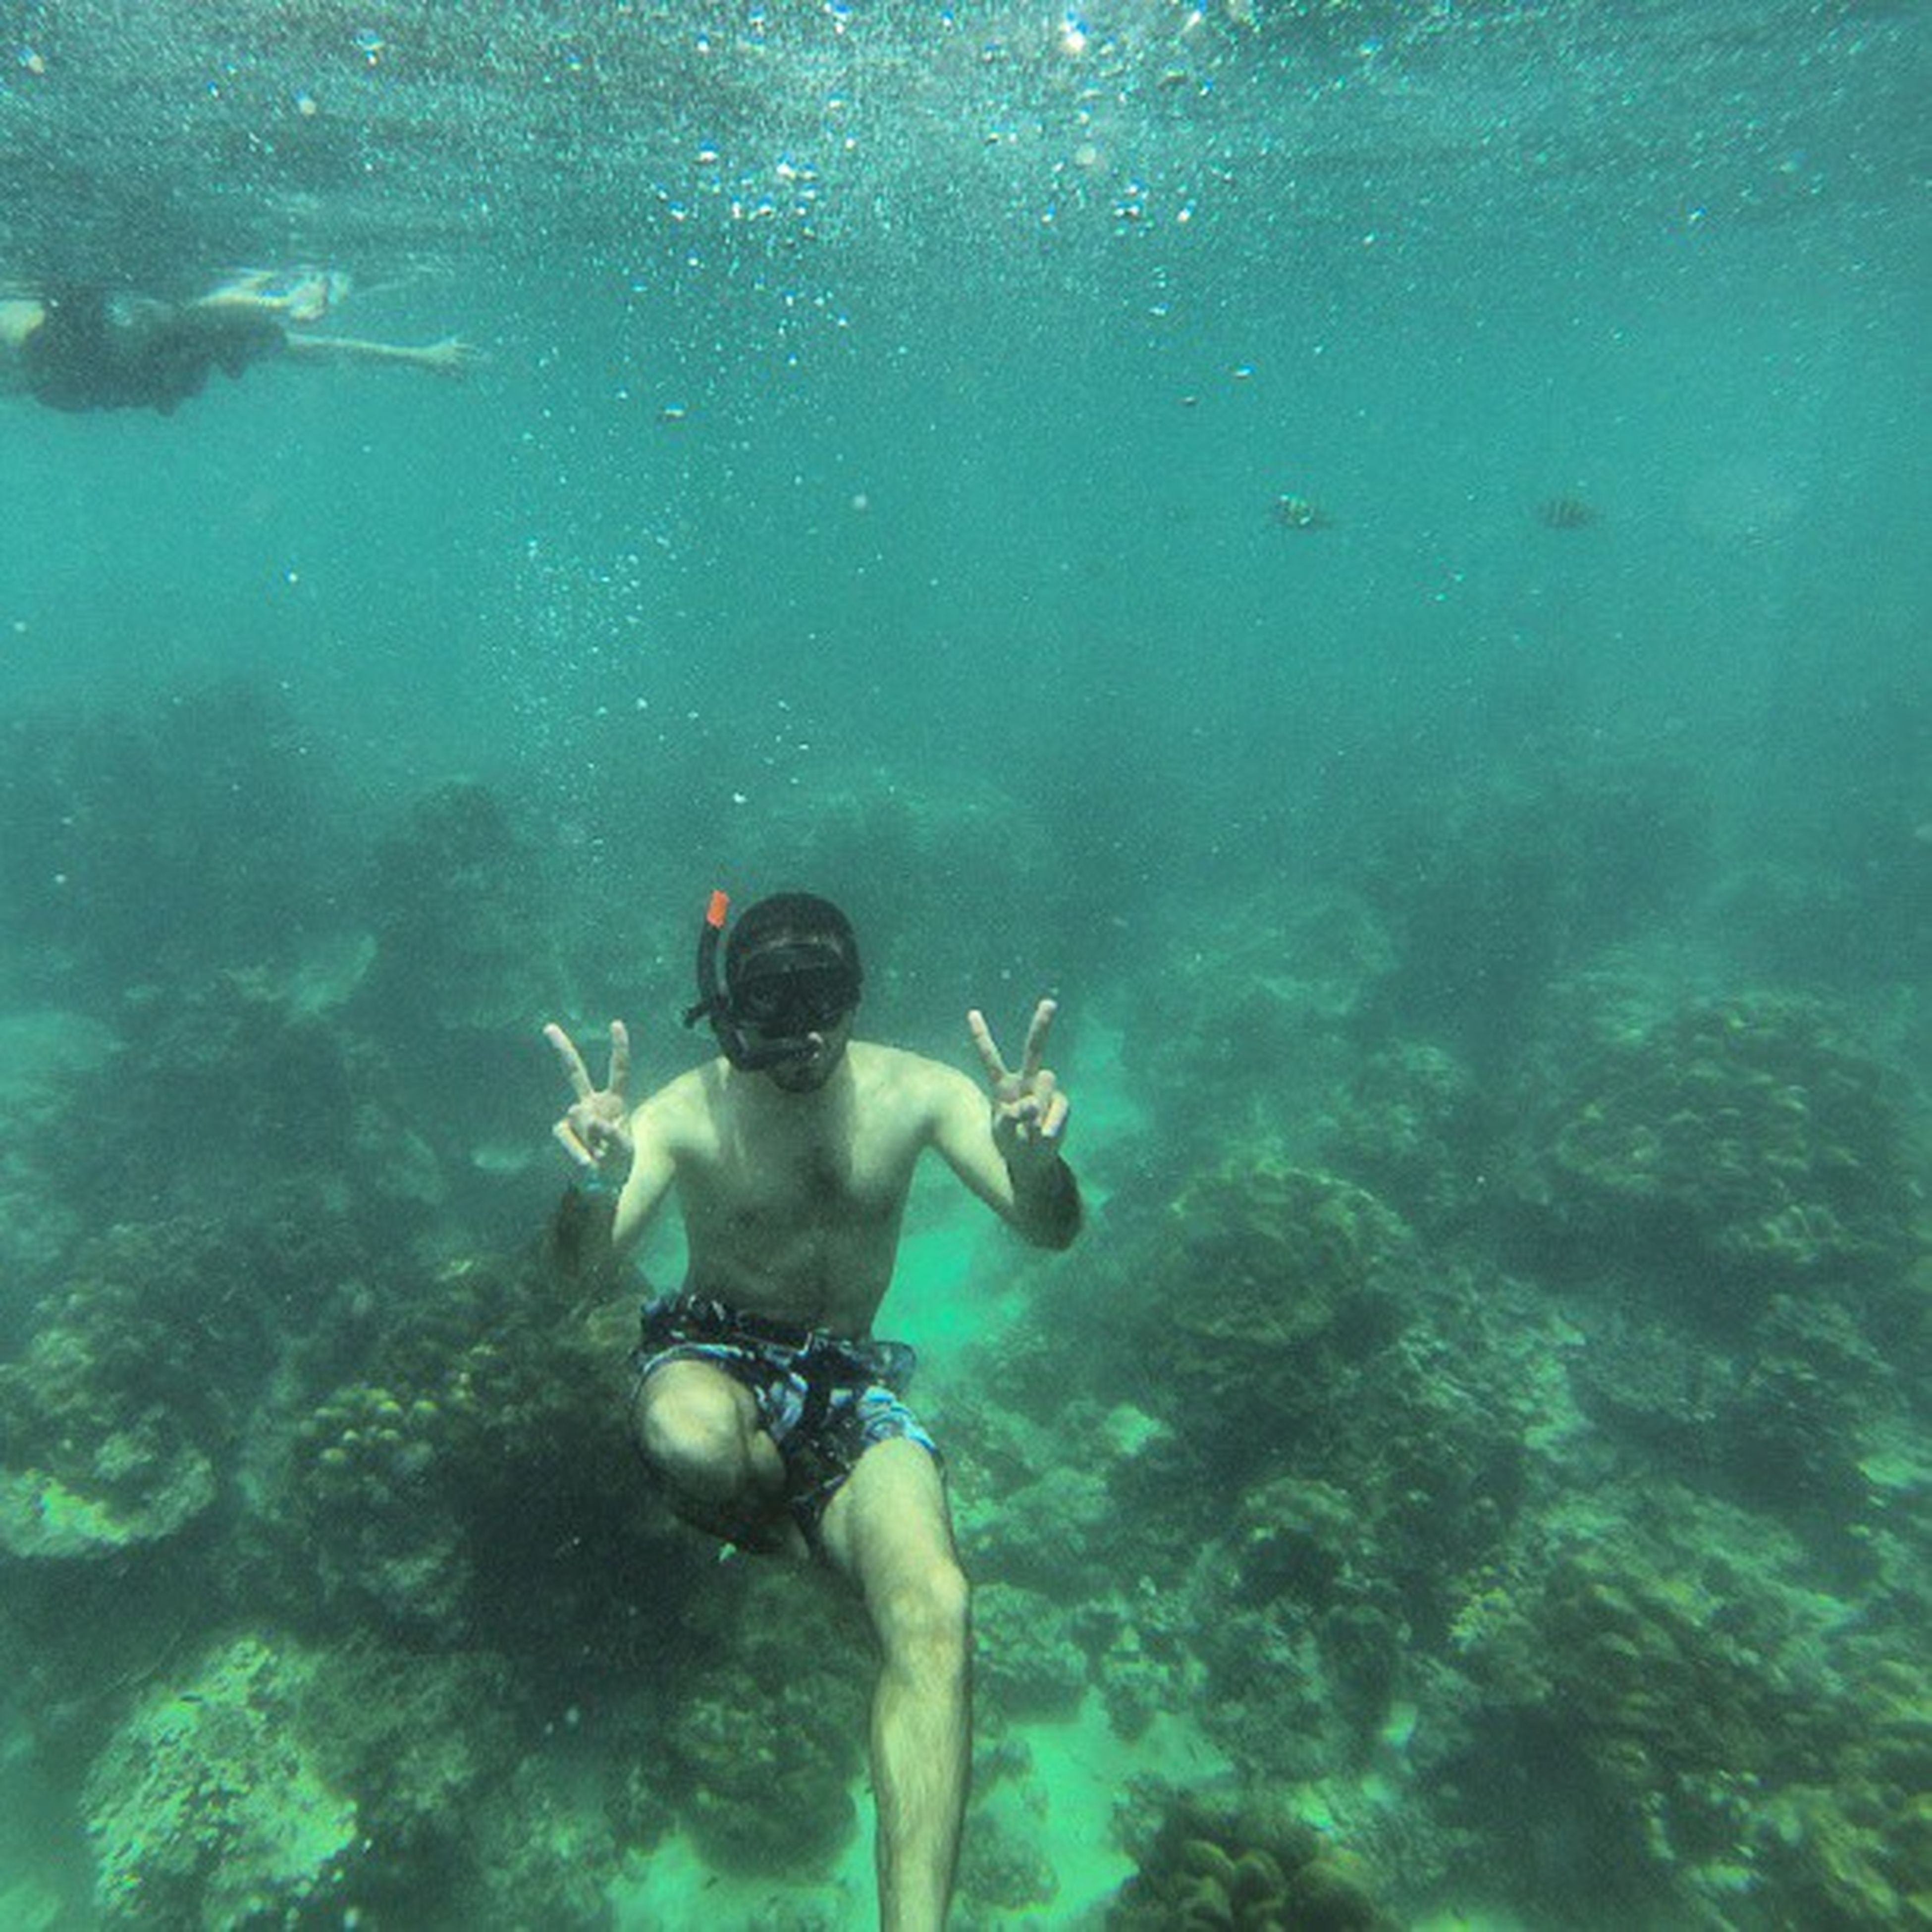 underwater, water, swimming, undersea, leisure activity, lifestyles, sea, adventure, blue, fish, sea life, full length, exploration, high angle view, men, scuba diving, vacations, shirtless